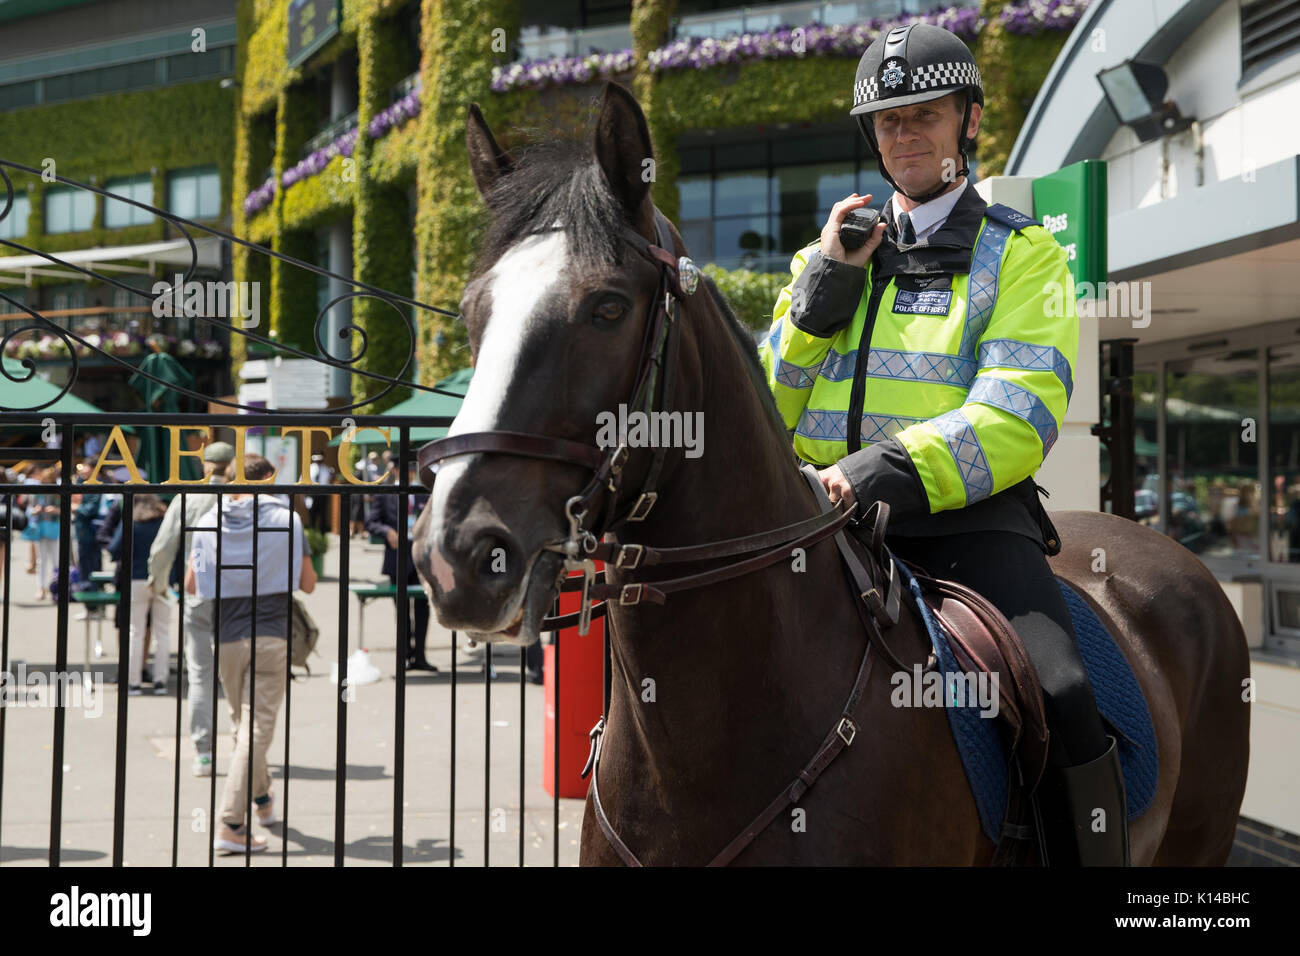 Horse mounted police outside Wimbledon Championships Stock Photo